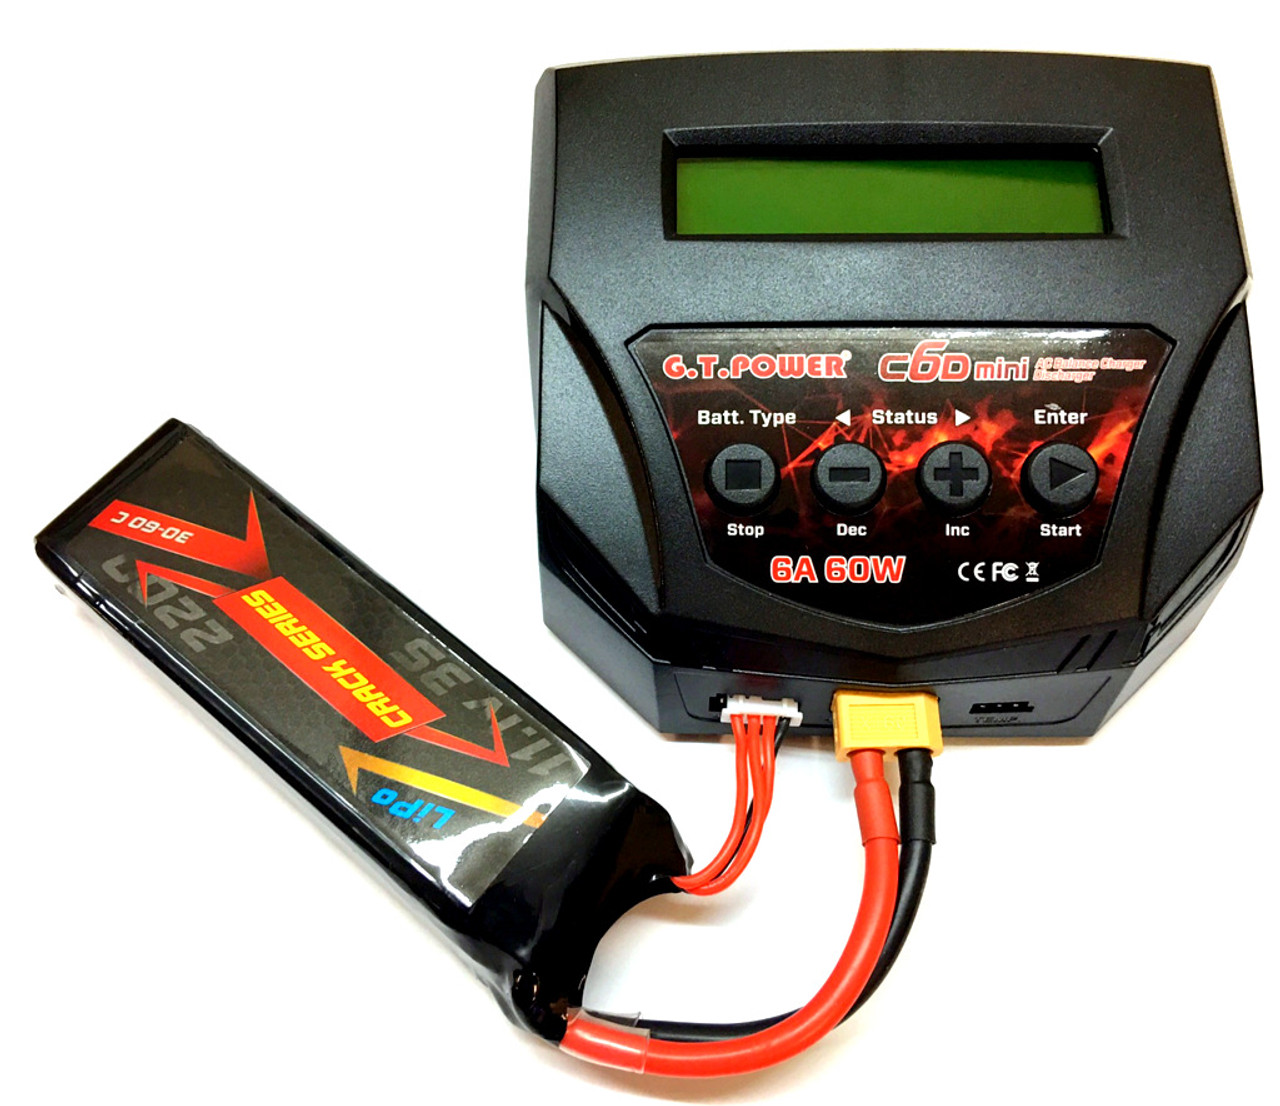 Lipo G.T. Power C6D MINI BALANCING 2s-4s 6A / 60W